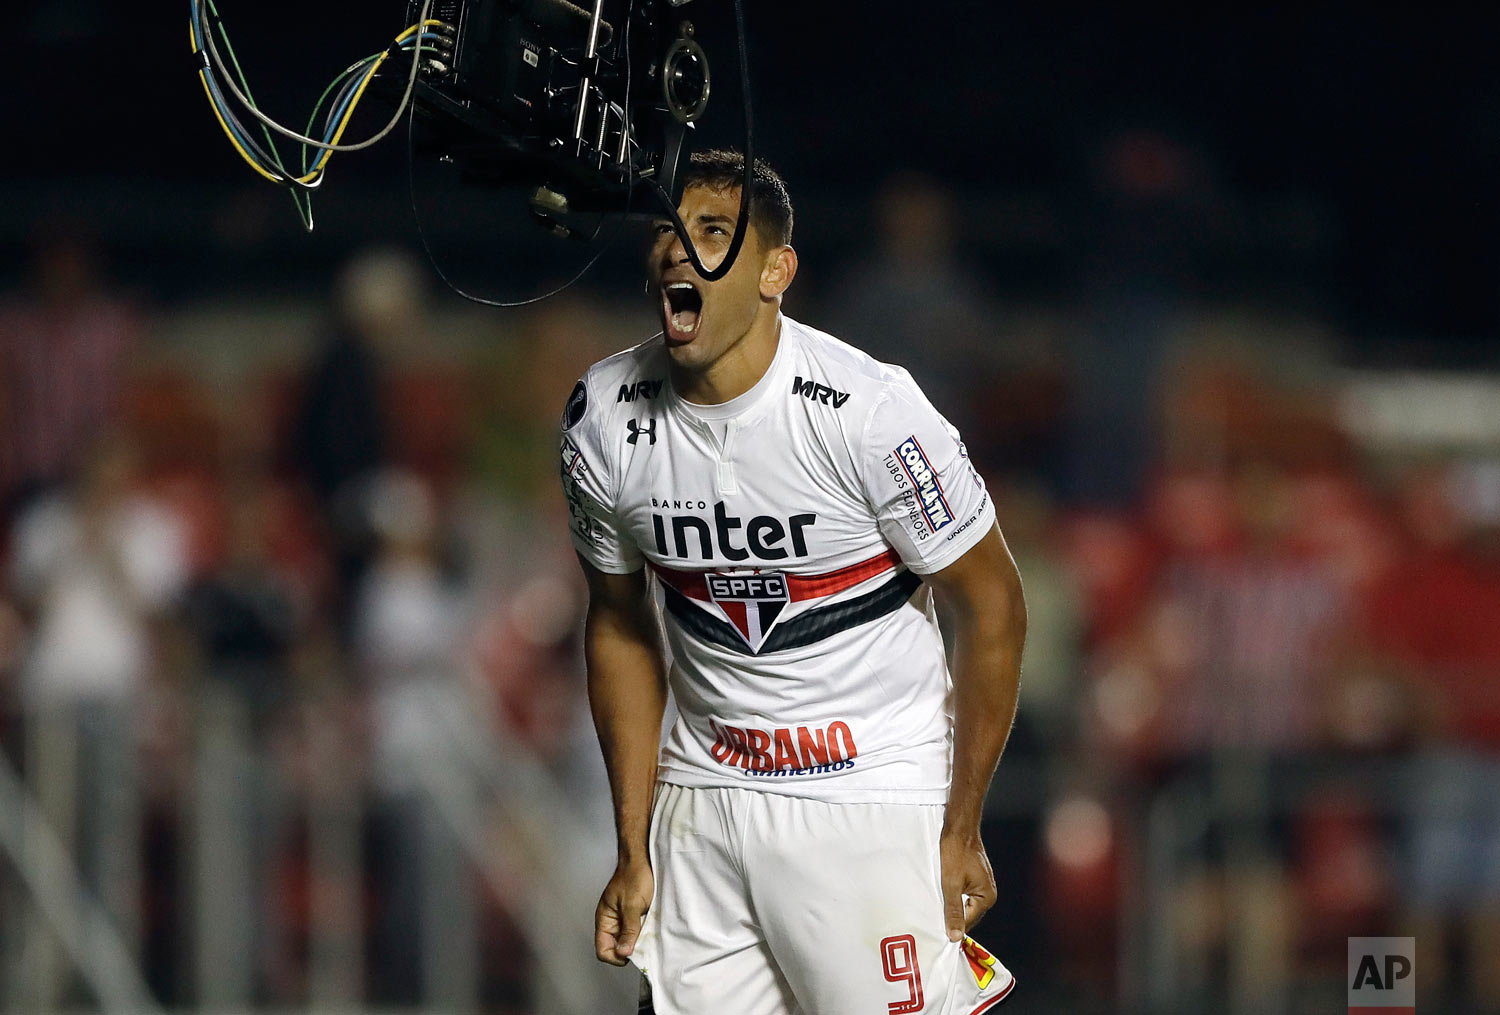 In this May 9, 2018 photo, Diego Souza of Brazil's Sao Paulo screams into a tv camera after scoring against Argentina's Rosario Central during a Copa Sudamericana soccer match in Sao Paulo, Brazil. (AP Photo/Andre Penner)